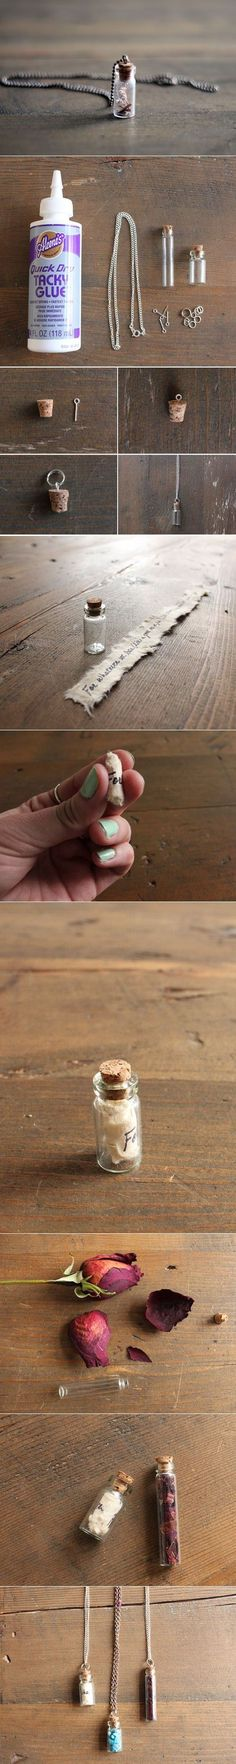 DIY Necklace Idea // Cute idea for keeping special momentos like flowers, sand, etc.